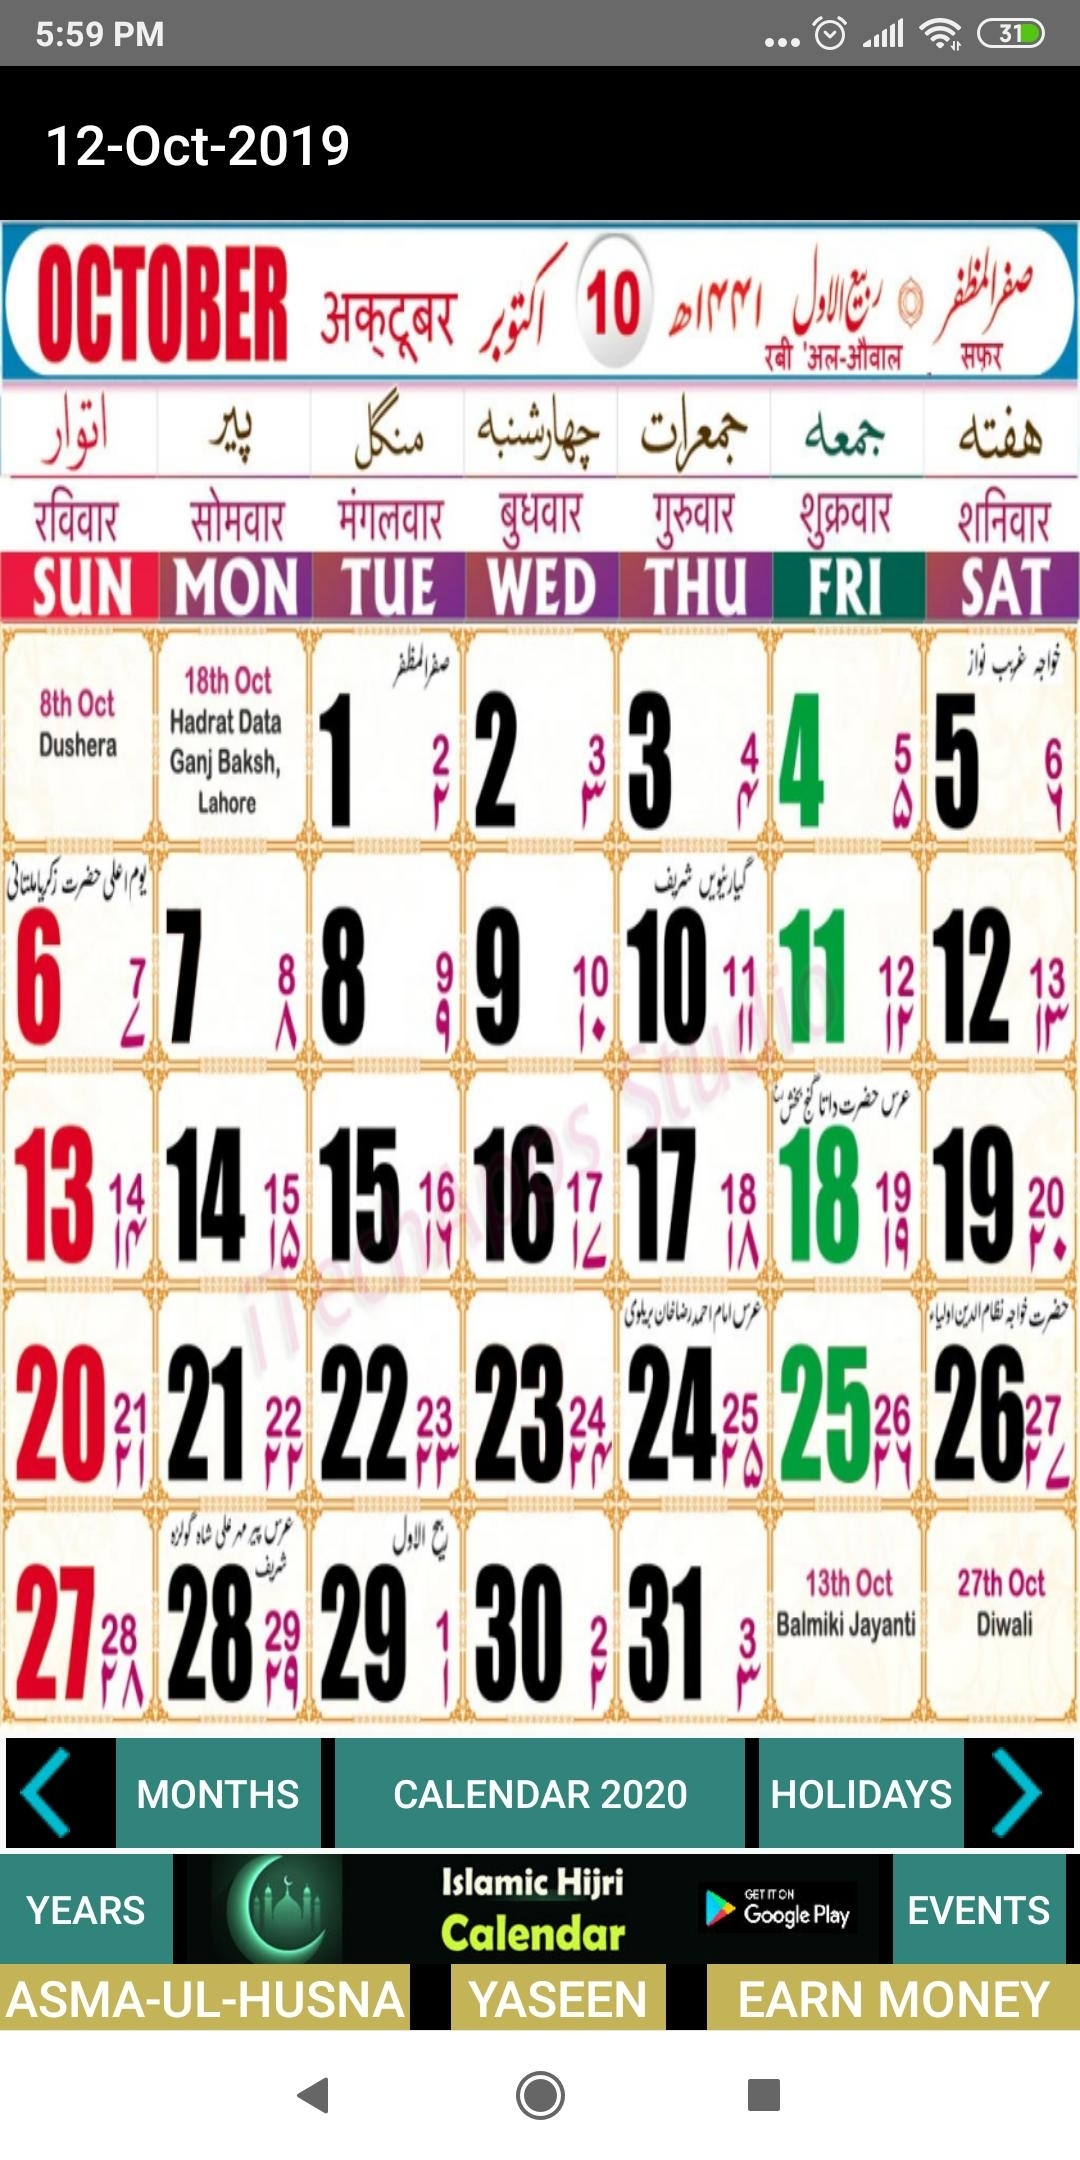 Urdu Calendar 2019 - Islamic Hijri Calendar 2020 For Android